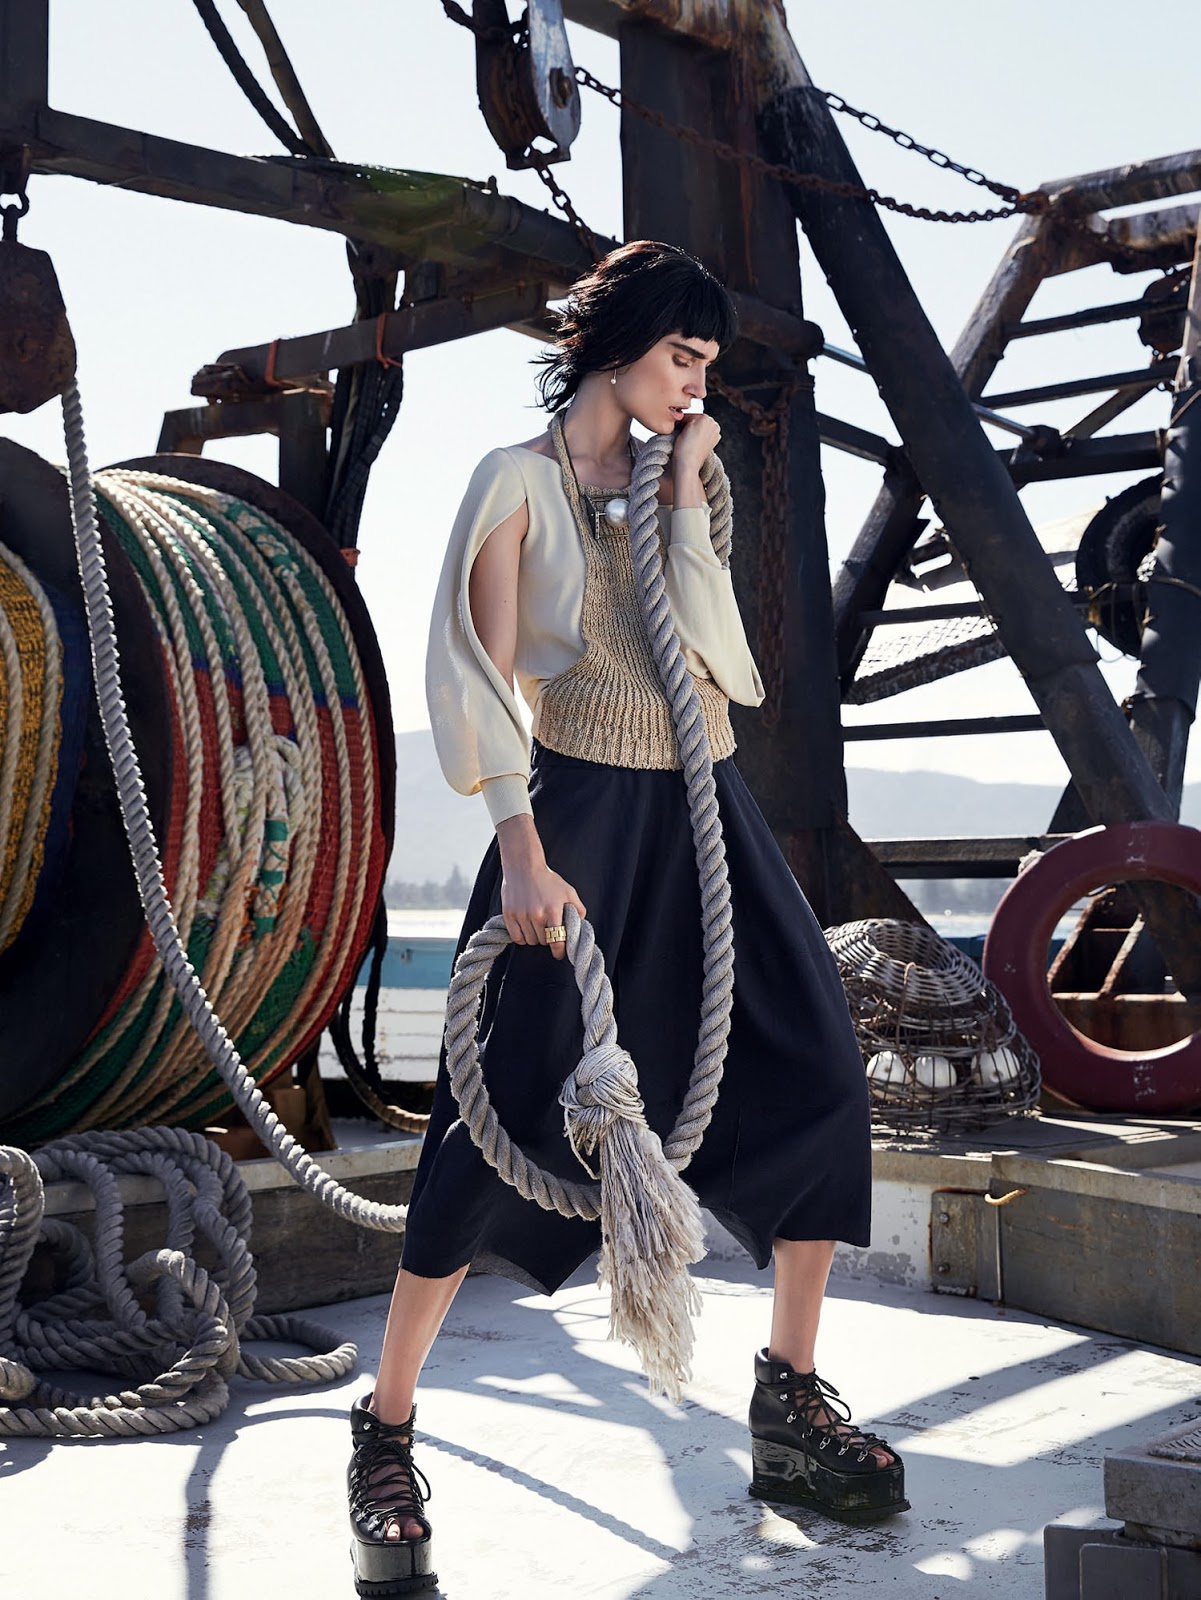 vogue-tales-of-land-and-sea-janice-seinen-8